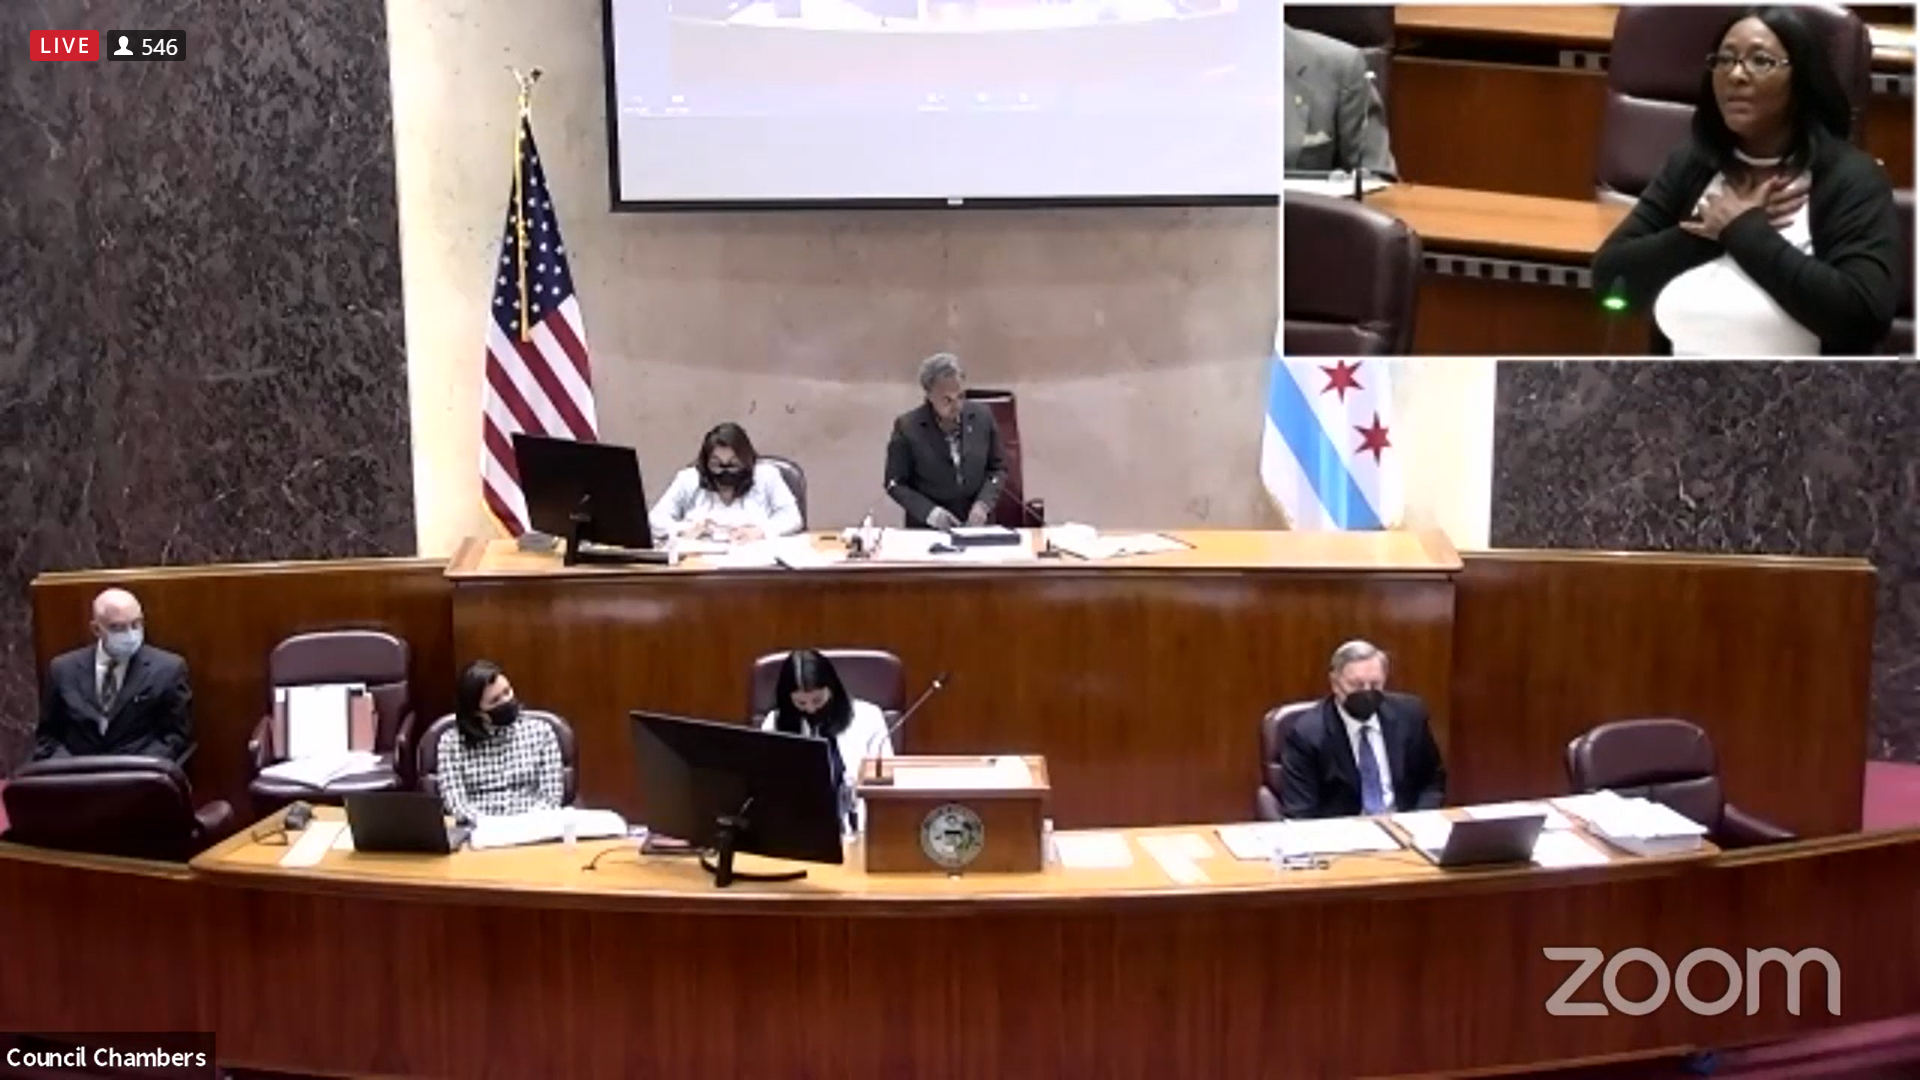 Civilian police oversight passes with only two votes to spare